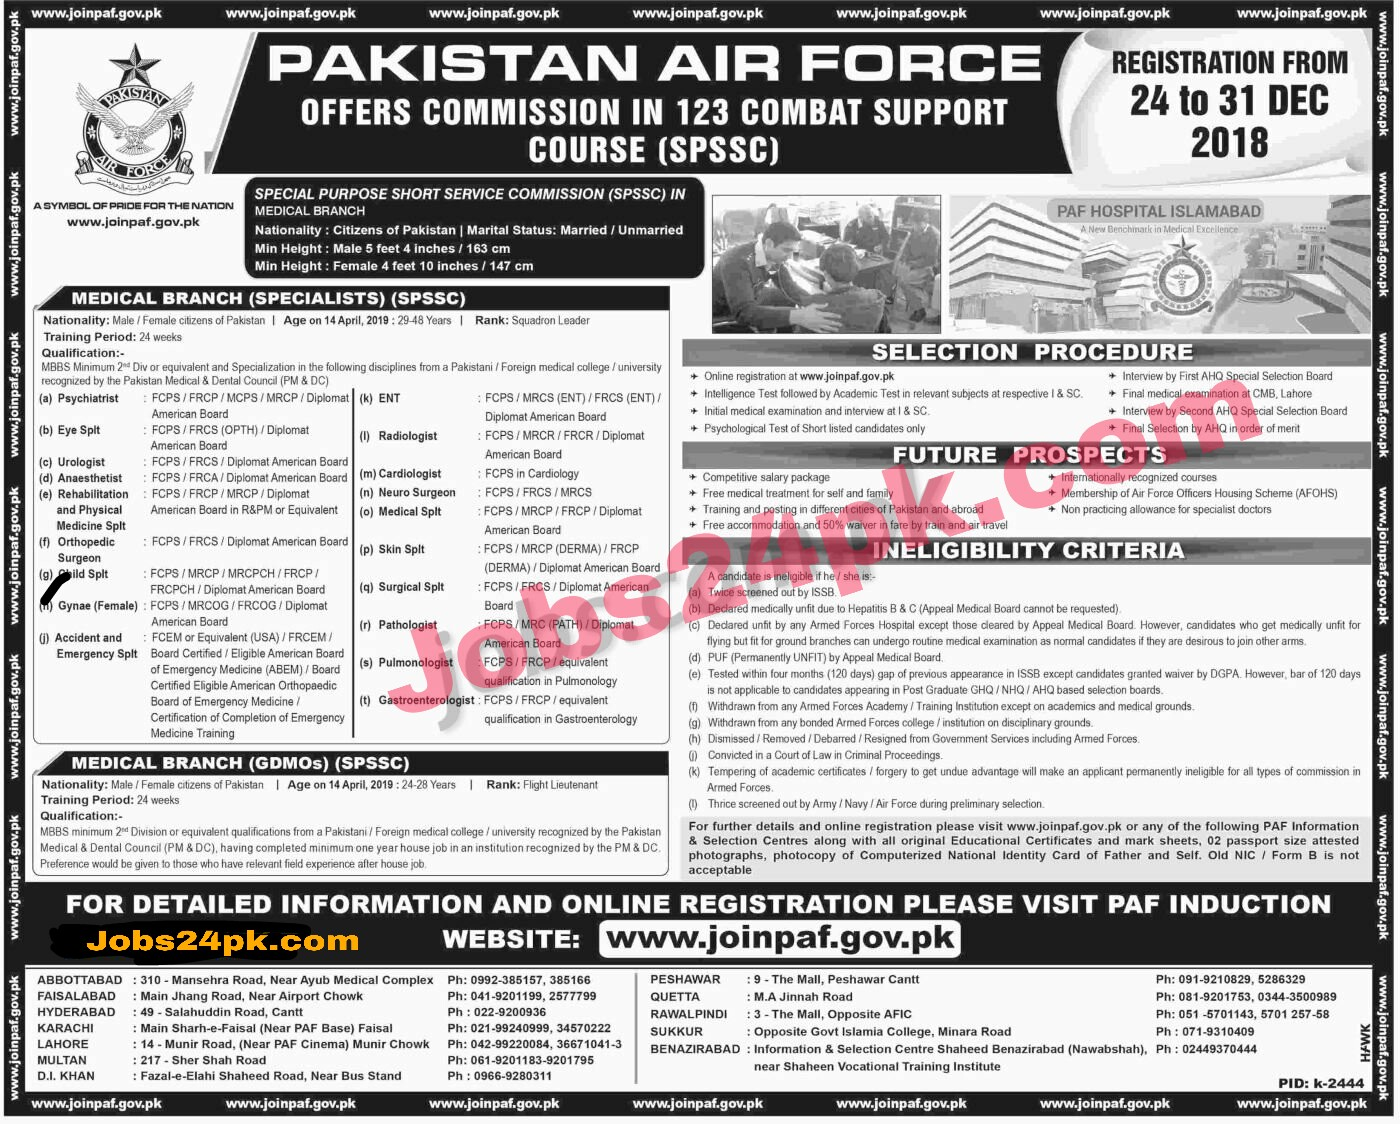 Join Pakistan air force through 123 SPSSC PAF JOBS 2019 join pakistan airforce through 123 combat support course